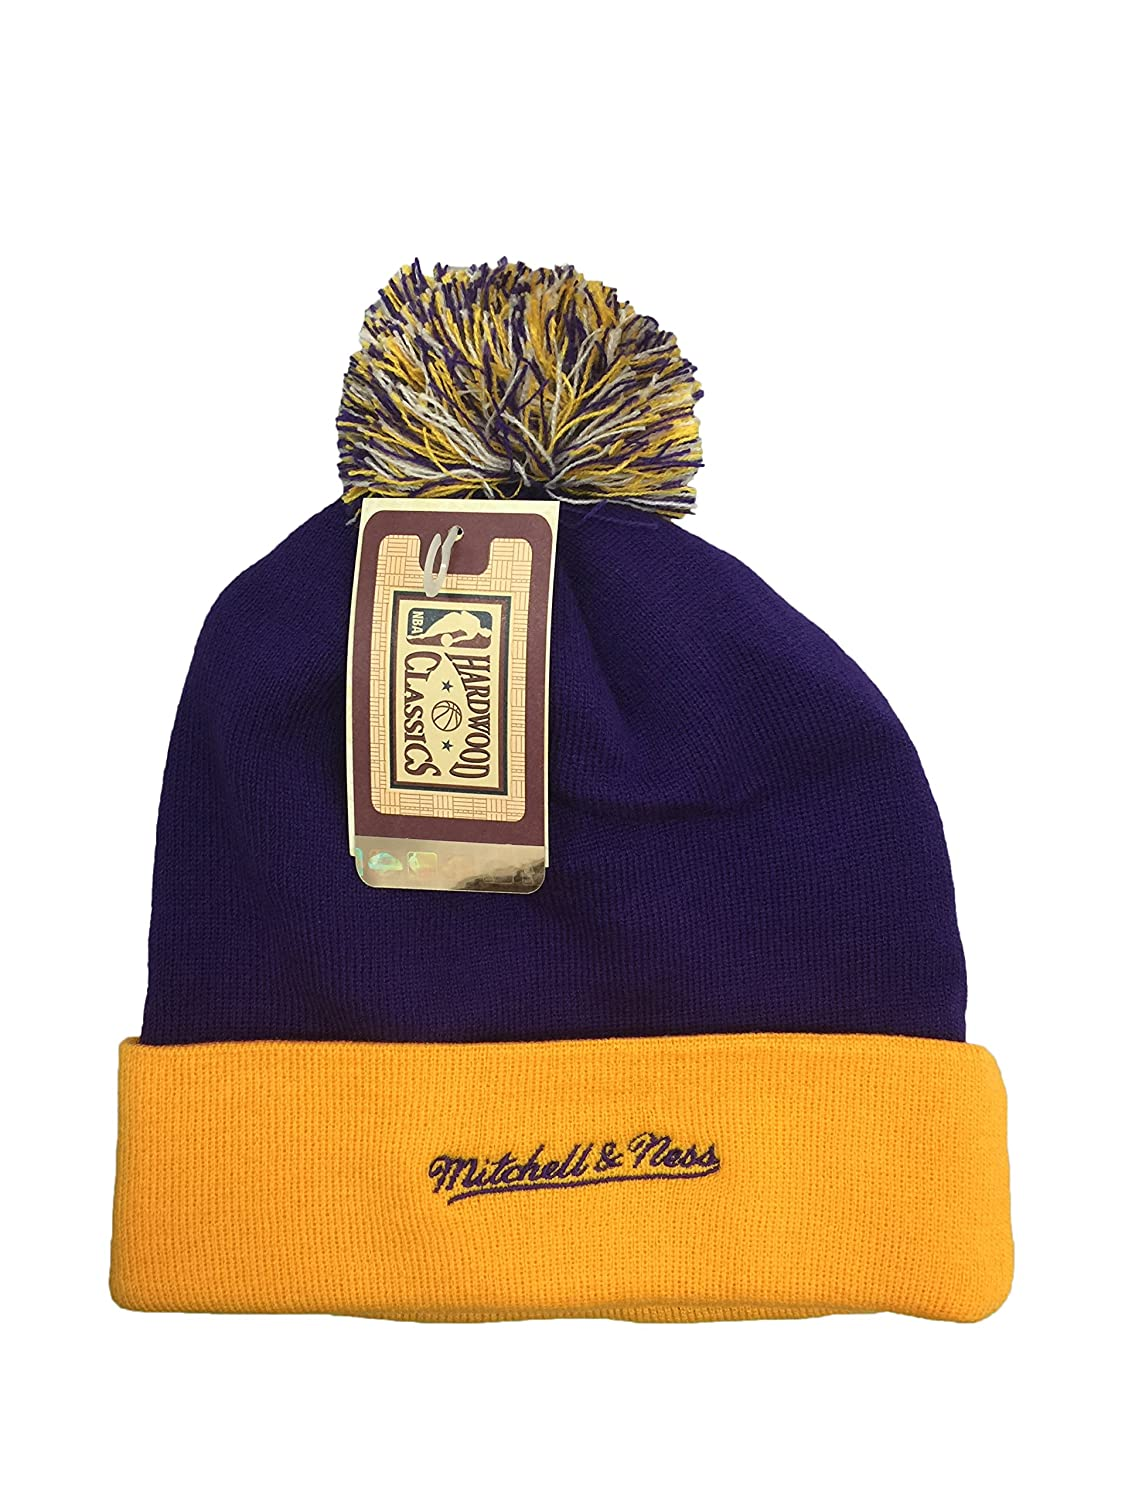 7846254675e Amazon.com  Mitchell   Ness New Orleans Jazz Primary Team Color Cuffed Knitted  Hat  Clothing